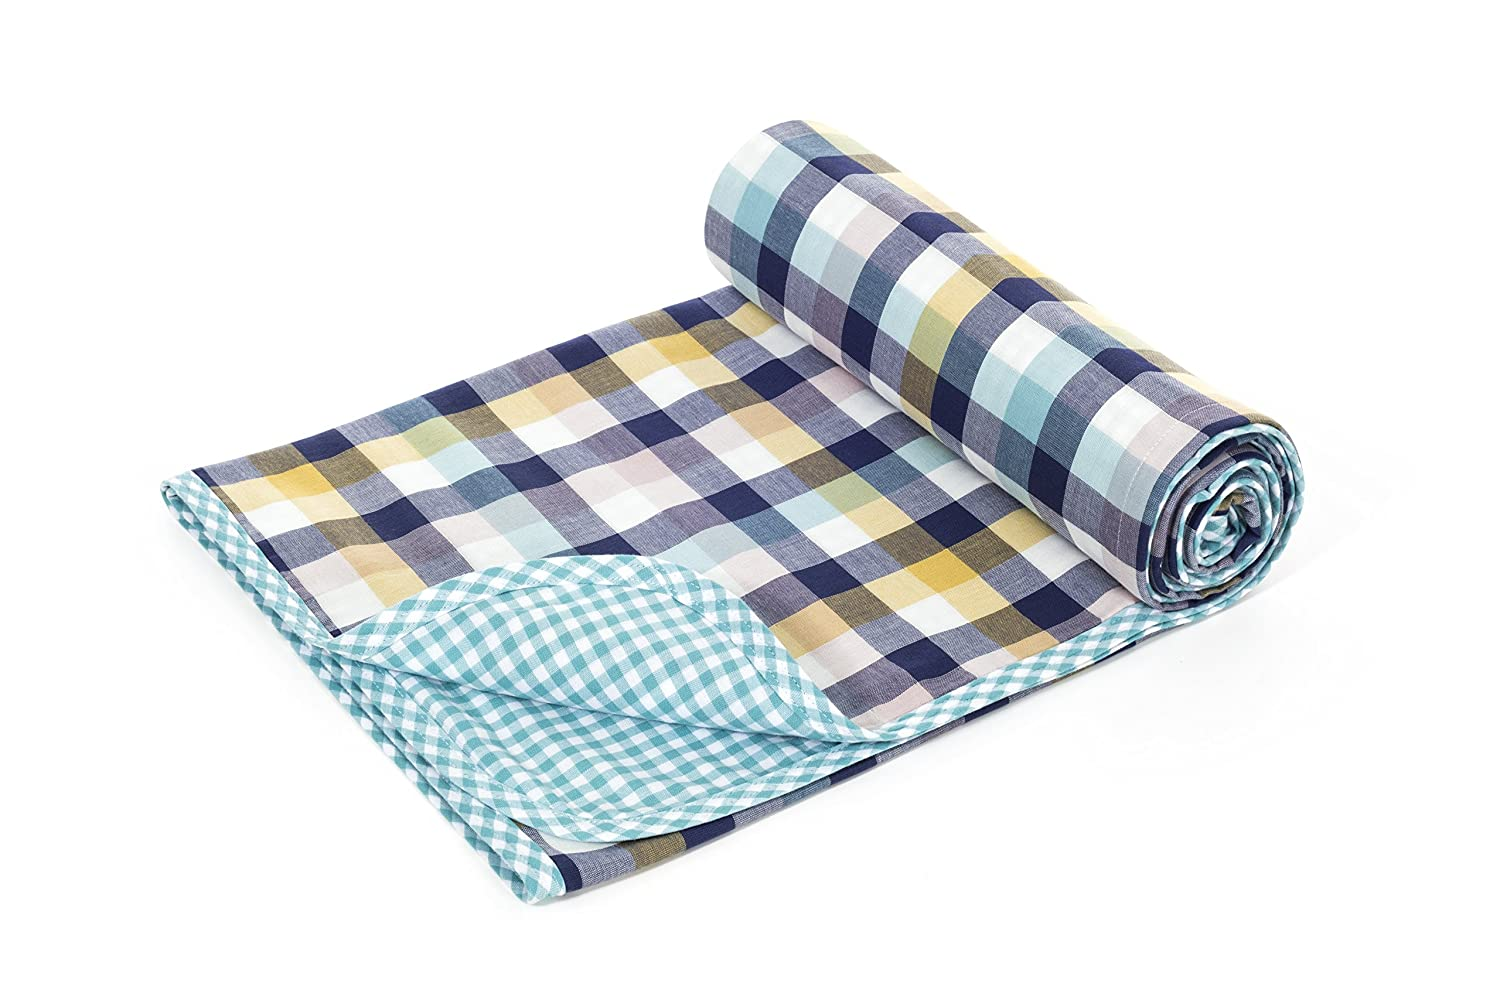 Henry and BROS. Large Double Layer Toddler Blanket, Girl Nap Blanket/Boy Nap Blanket, Light Blanket for Kids, Kids Blanket Patterns Made of 100% Cotton (Classic Check)